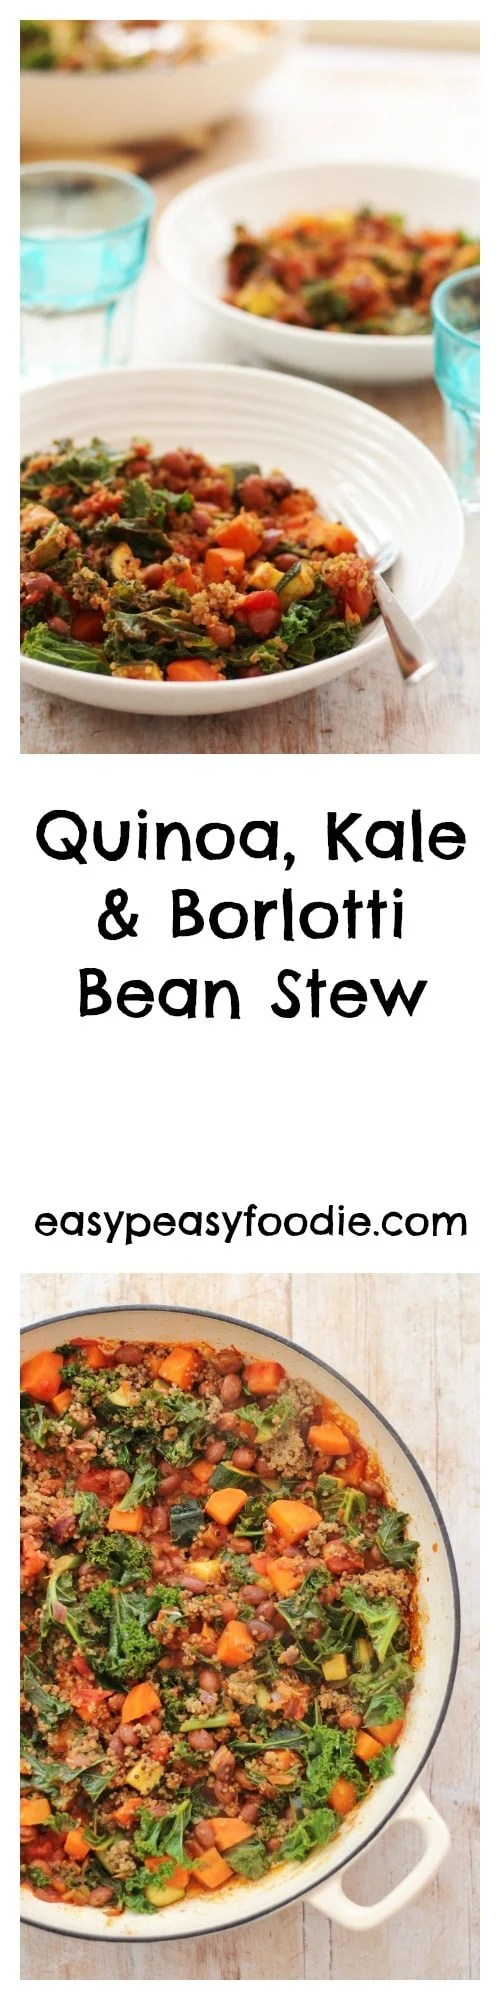 This quick and easy one pot Quinoa, Kale and Borlotti Bean Stew ticks so many boxes – it's gluten free, dairy free, vegan, full of goodness, comforting and above all totally delicious – AND it includes kale and quinoa – what more could you want? #quinoa #kale #borlottibeans #glutenfree #dairyfree #vegan #vegetarian #stew #15minutemeals #easydinners #easypeasyfoodie